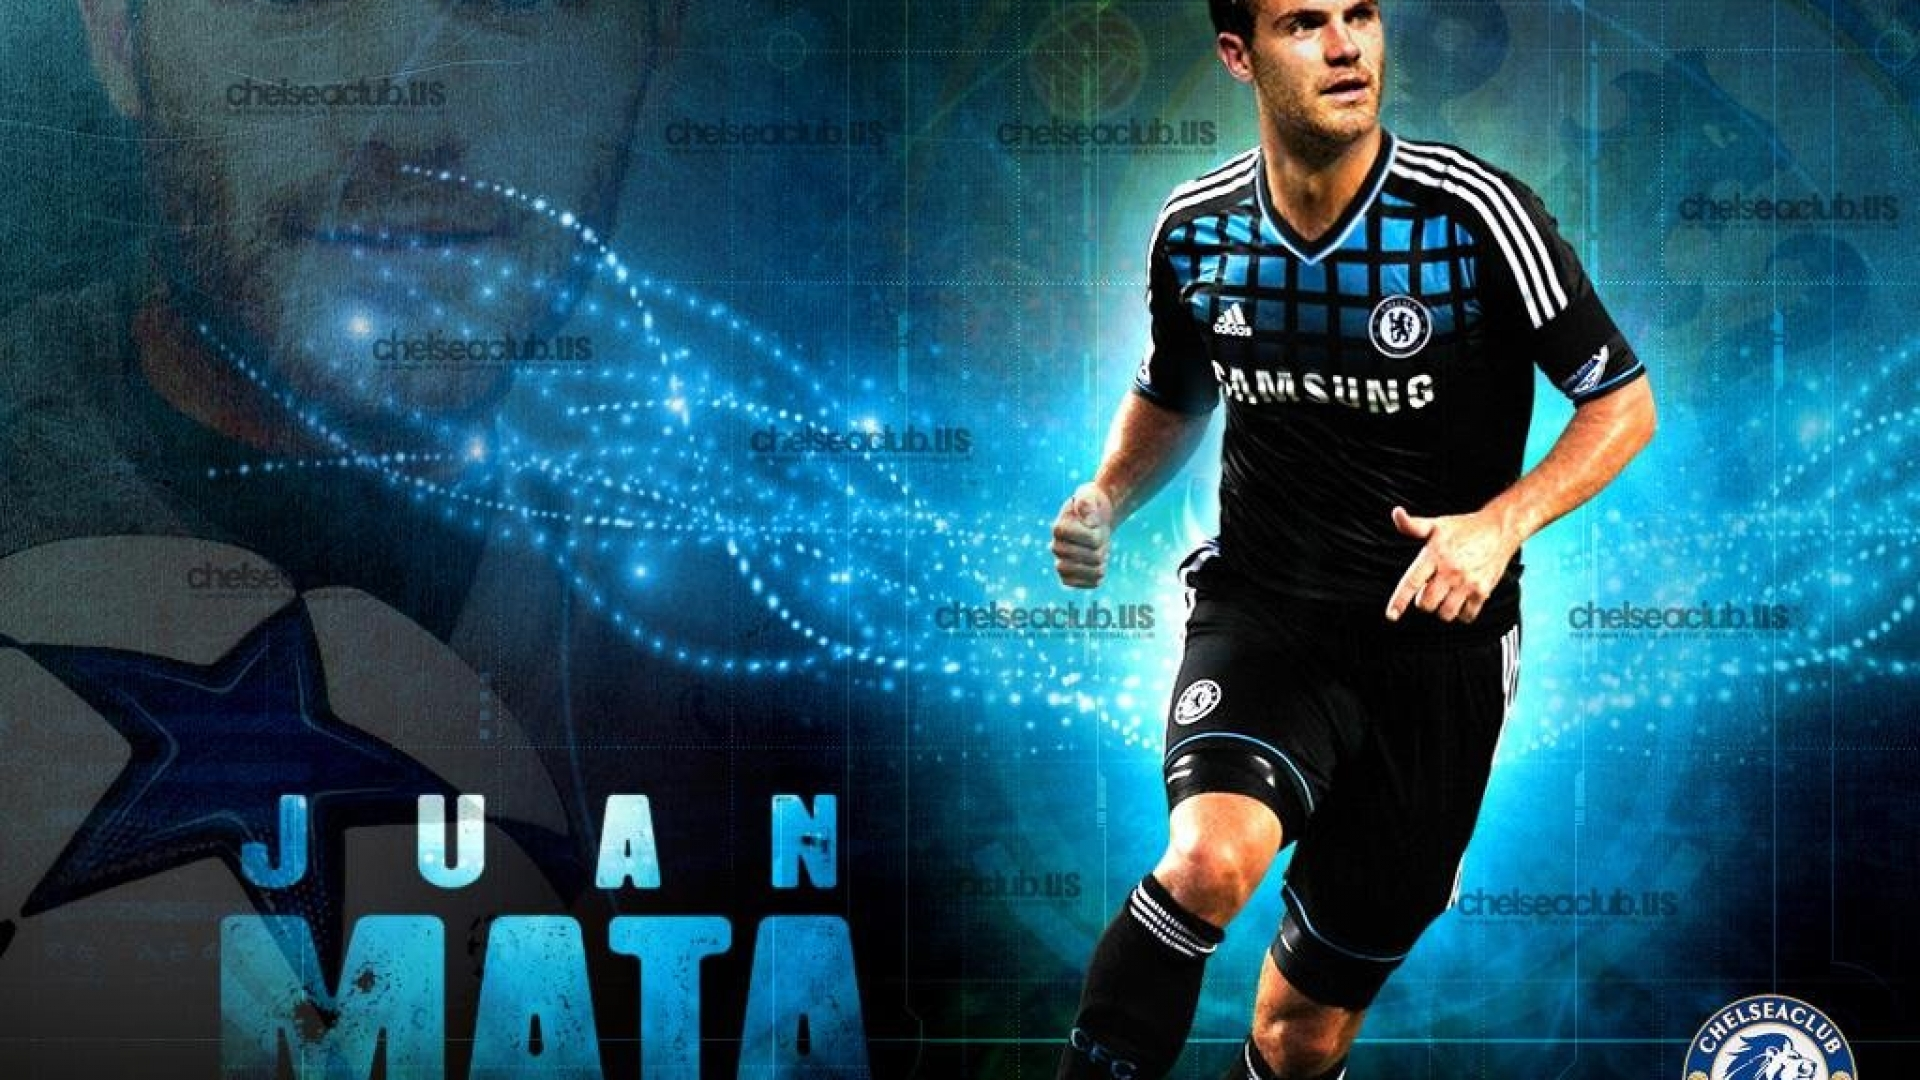 Chelsea-Wallpaper-Juan-Mata